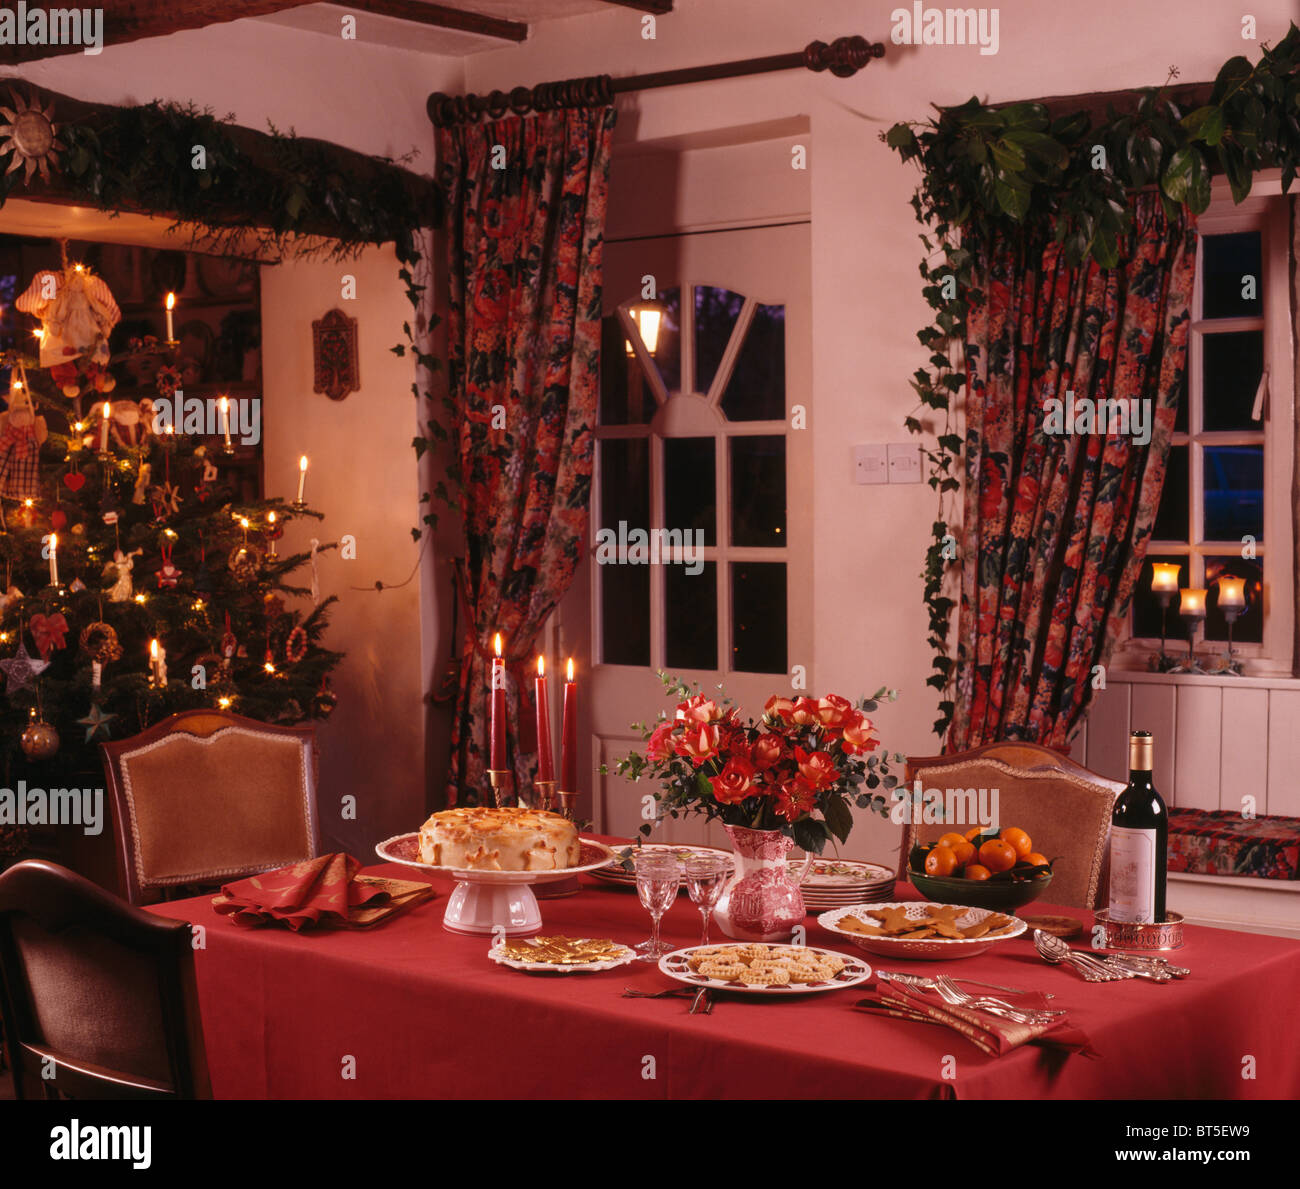 red cloth on table set for christmas tea in cottage dining room red cloth on table set for christmas tea in cottage dining room with christmas tree in the corner of the room